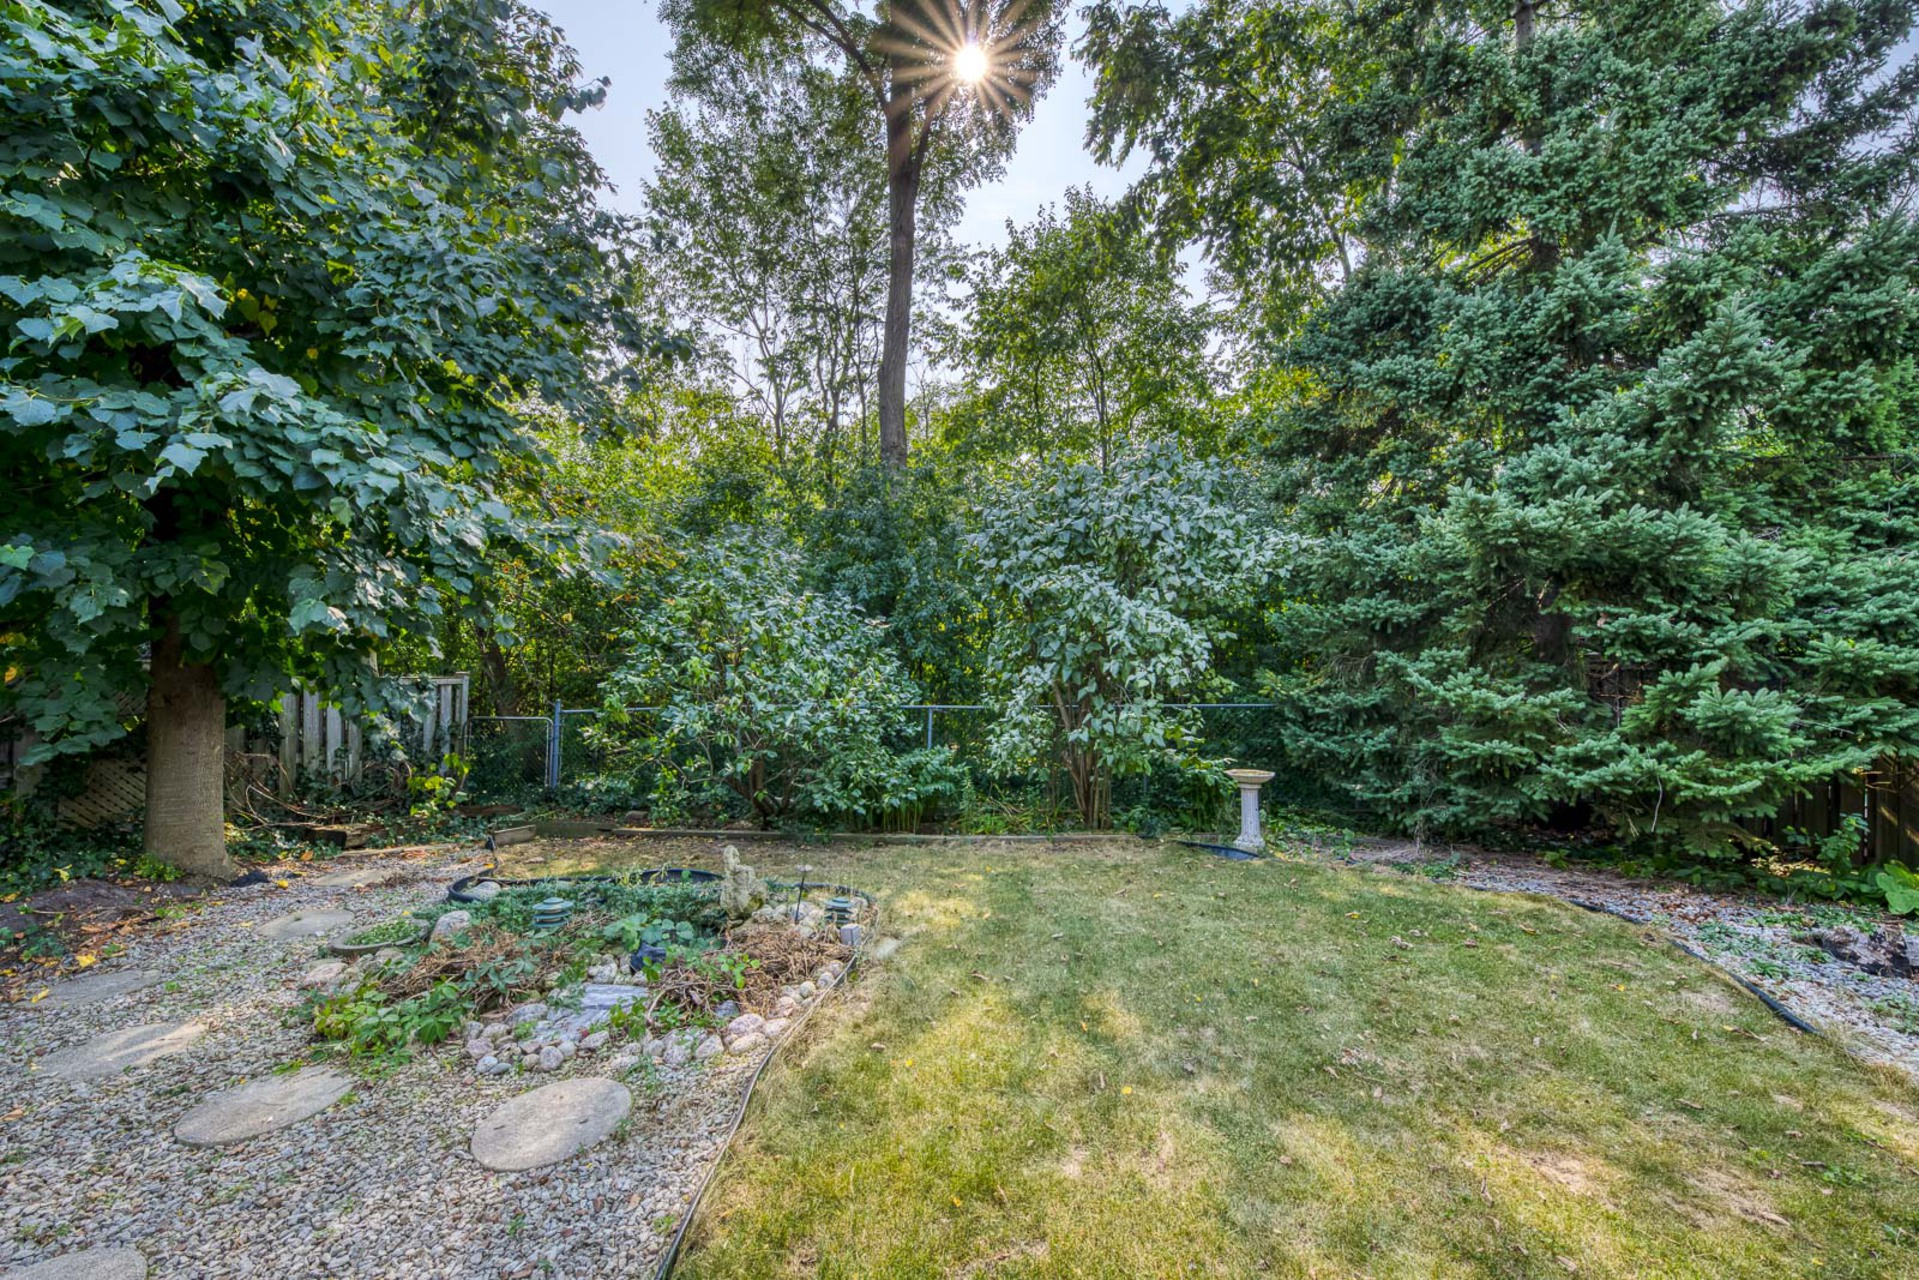 mls-52 at 4246 Wakefield Crescent, Creditview, Mississauga